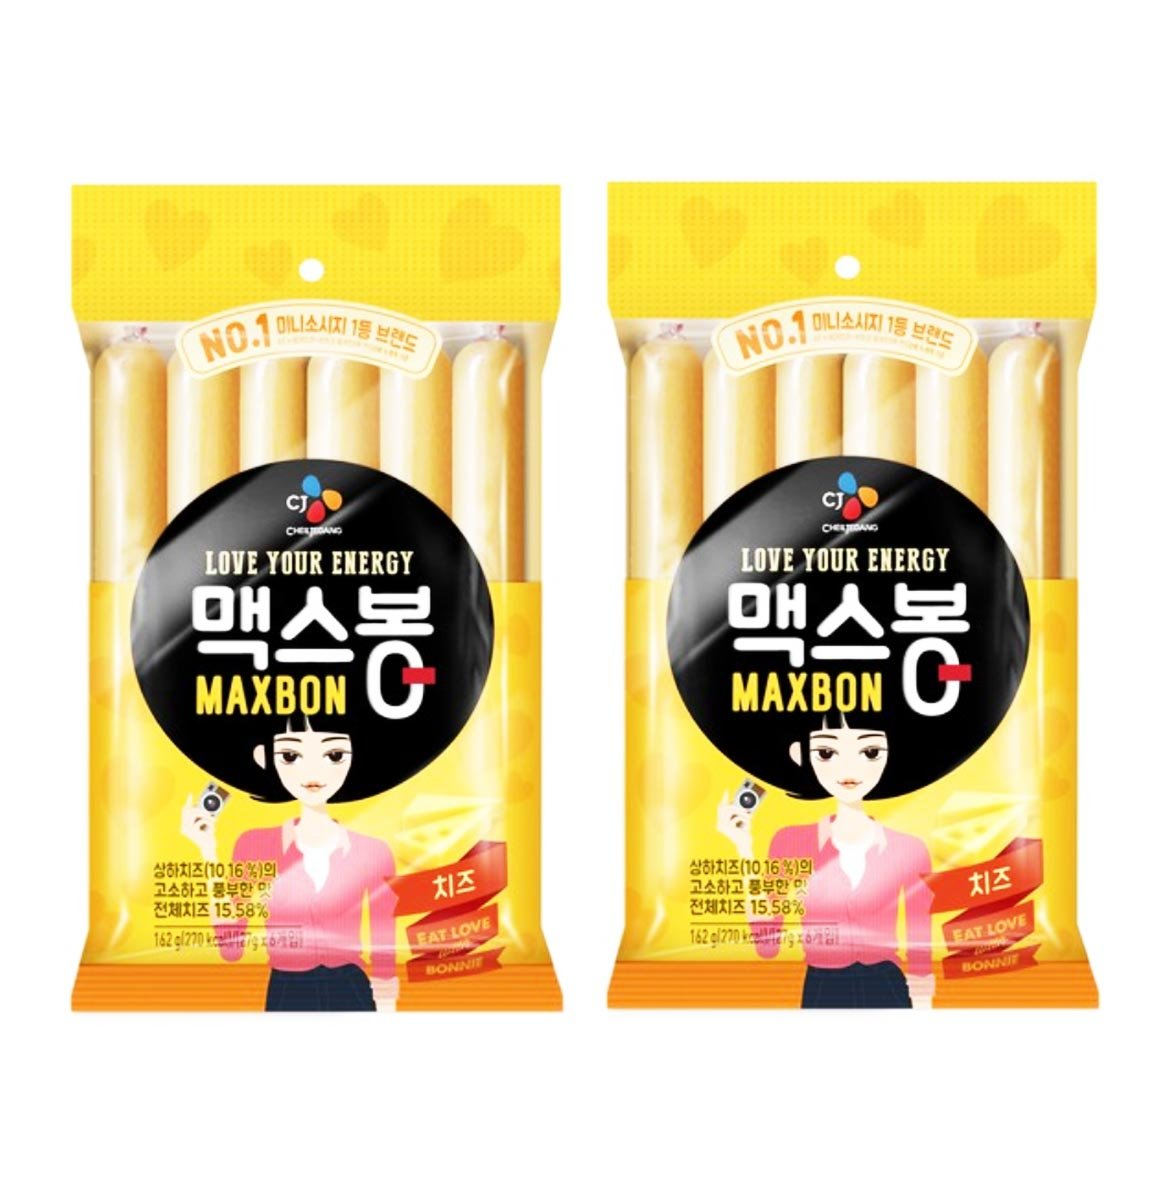 Korean CJ Maxbon Fish & Cheese Sausage Sticks (2 Pack)